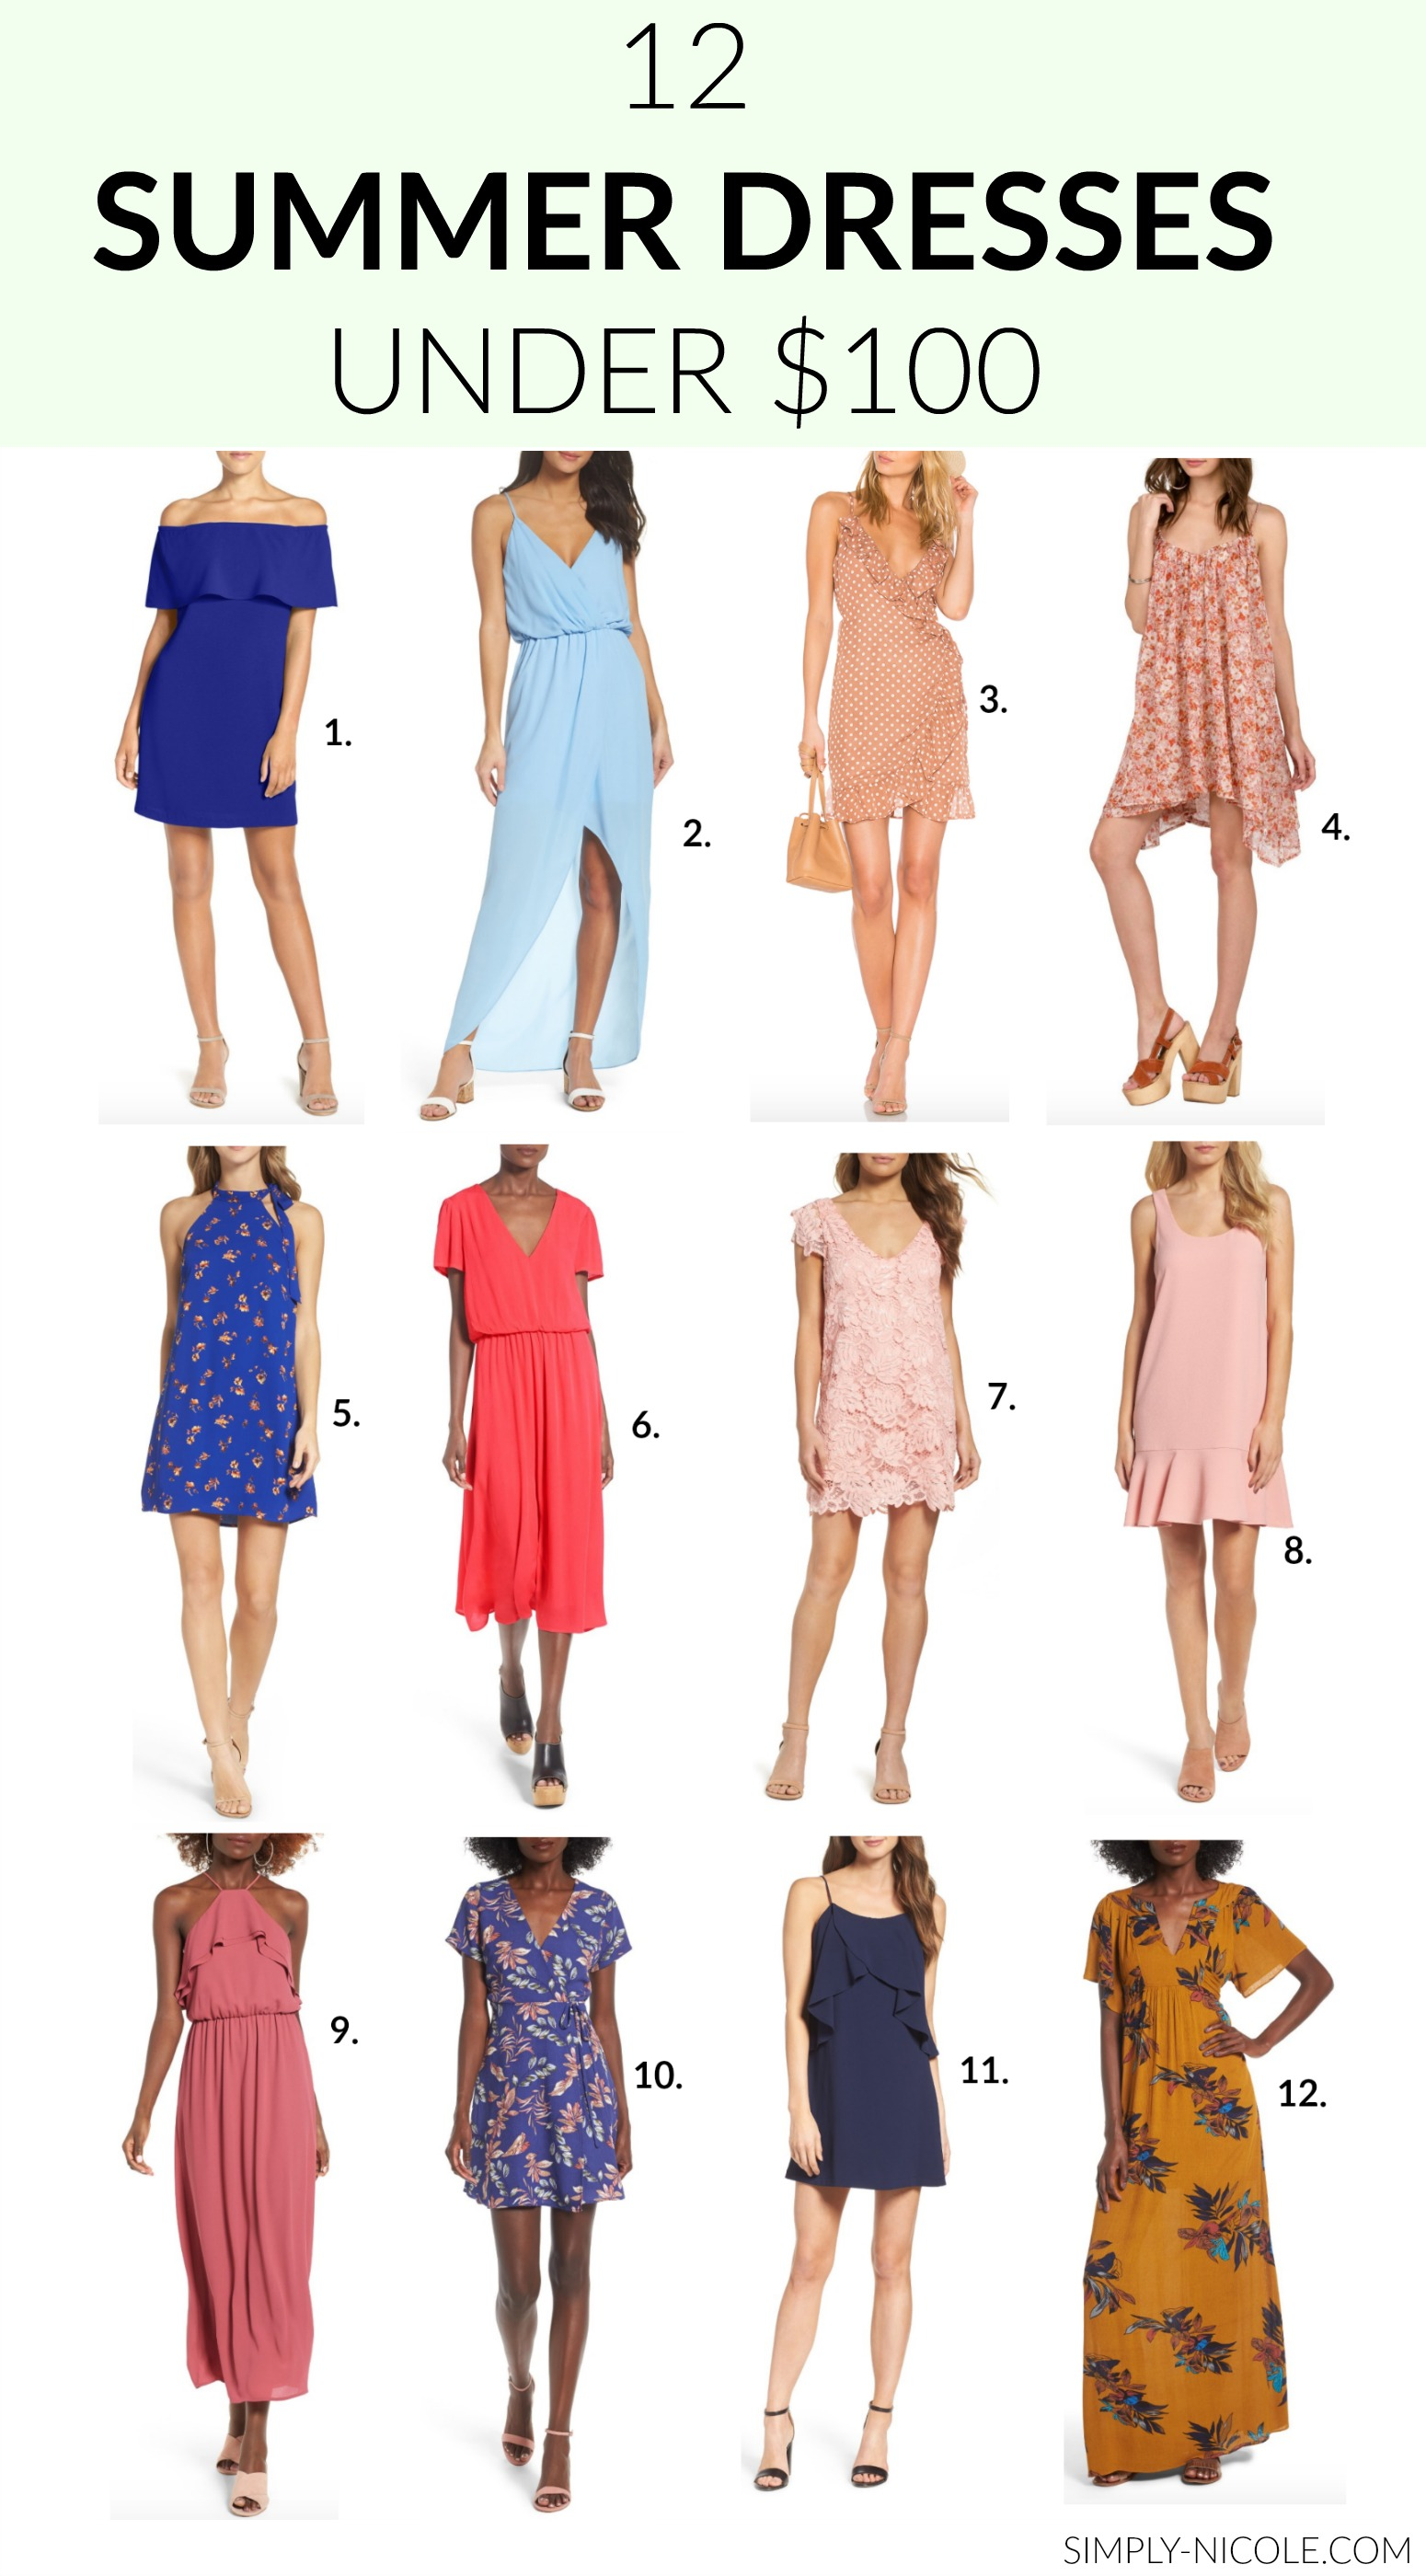 Affordable summer dresses